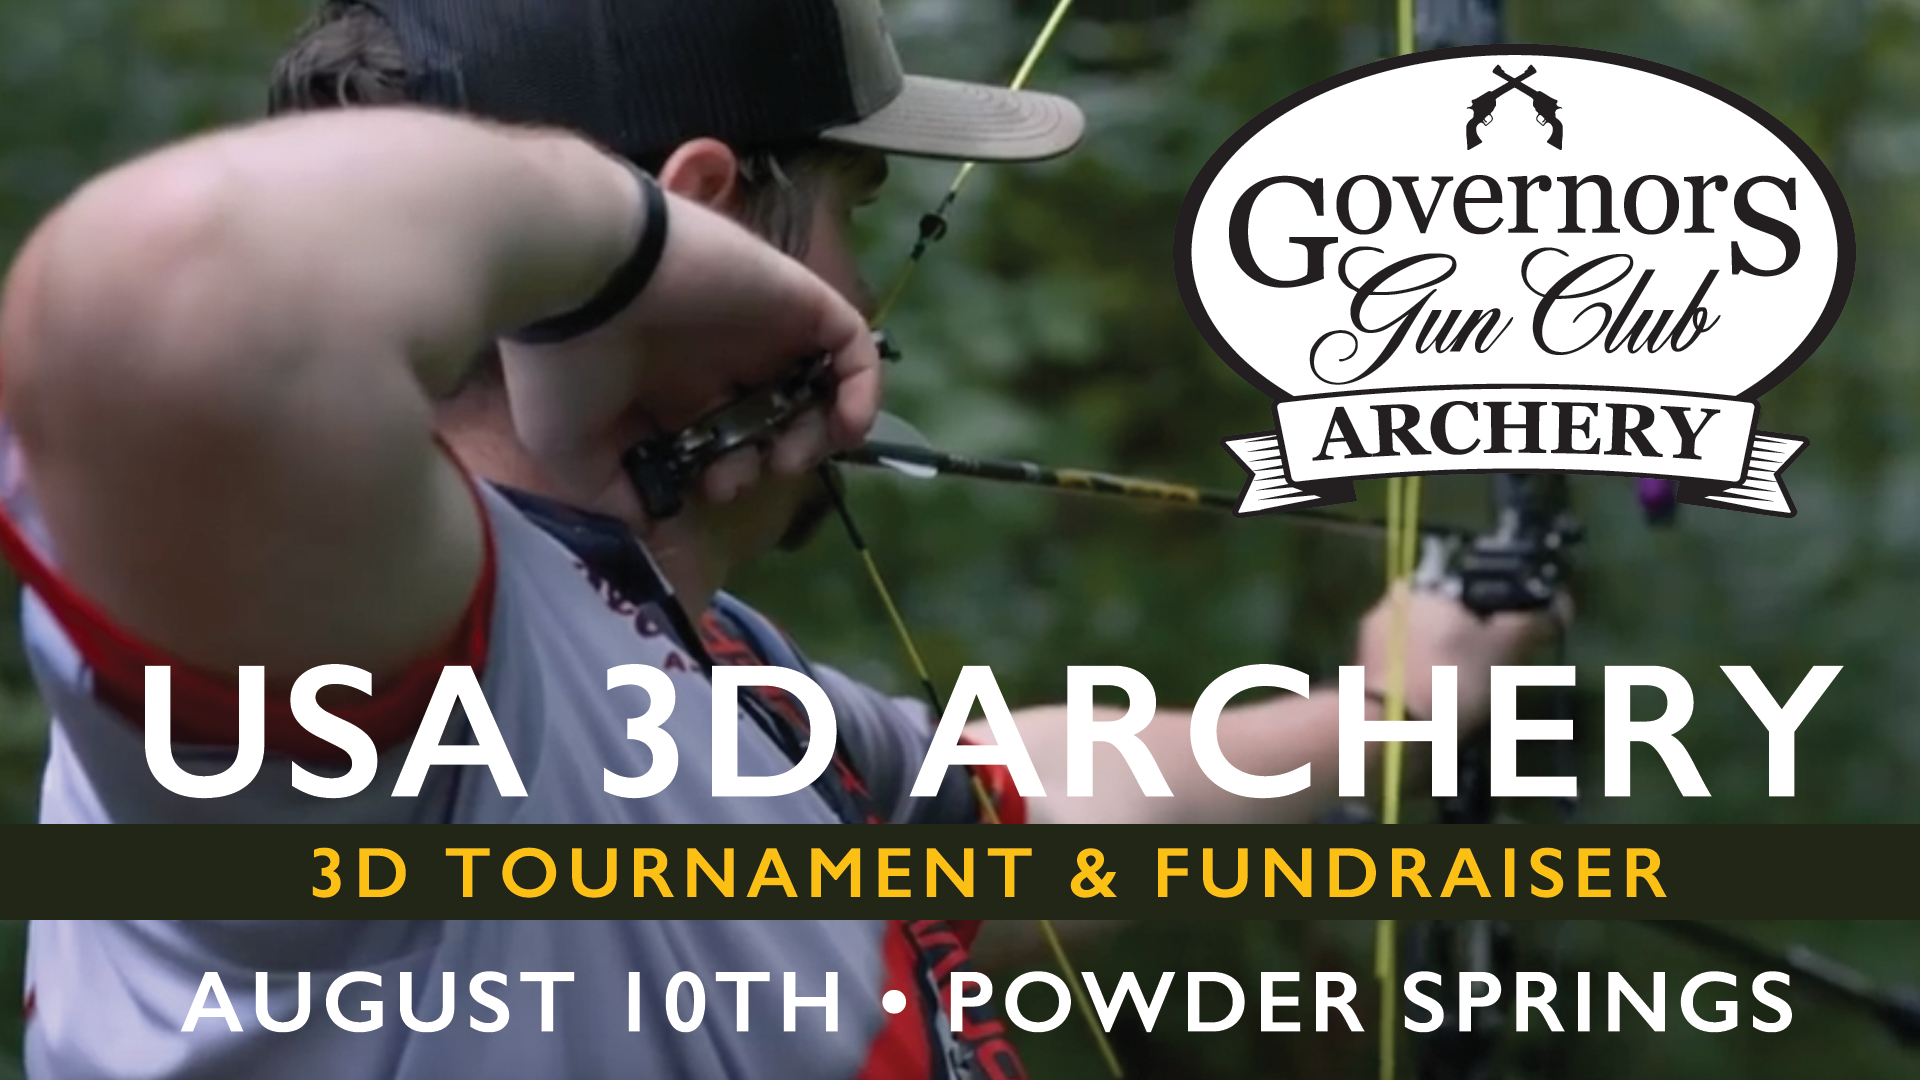 USA 3D Archery Tournament & Fundraiser @ Governors Gun Club Powder Springs